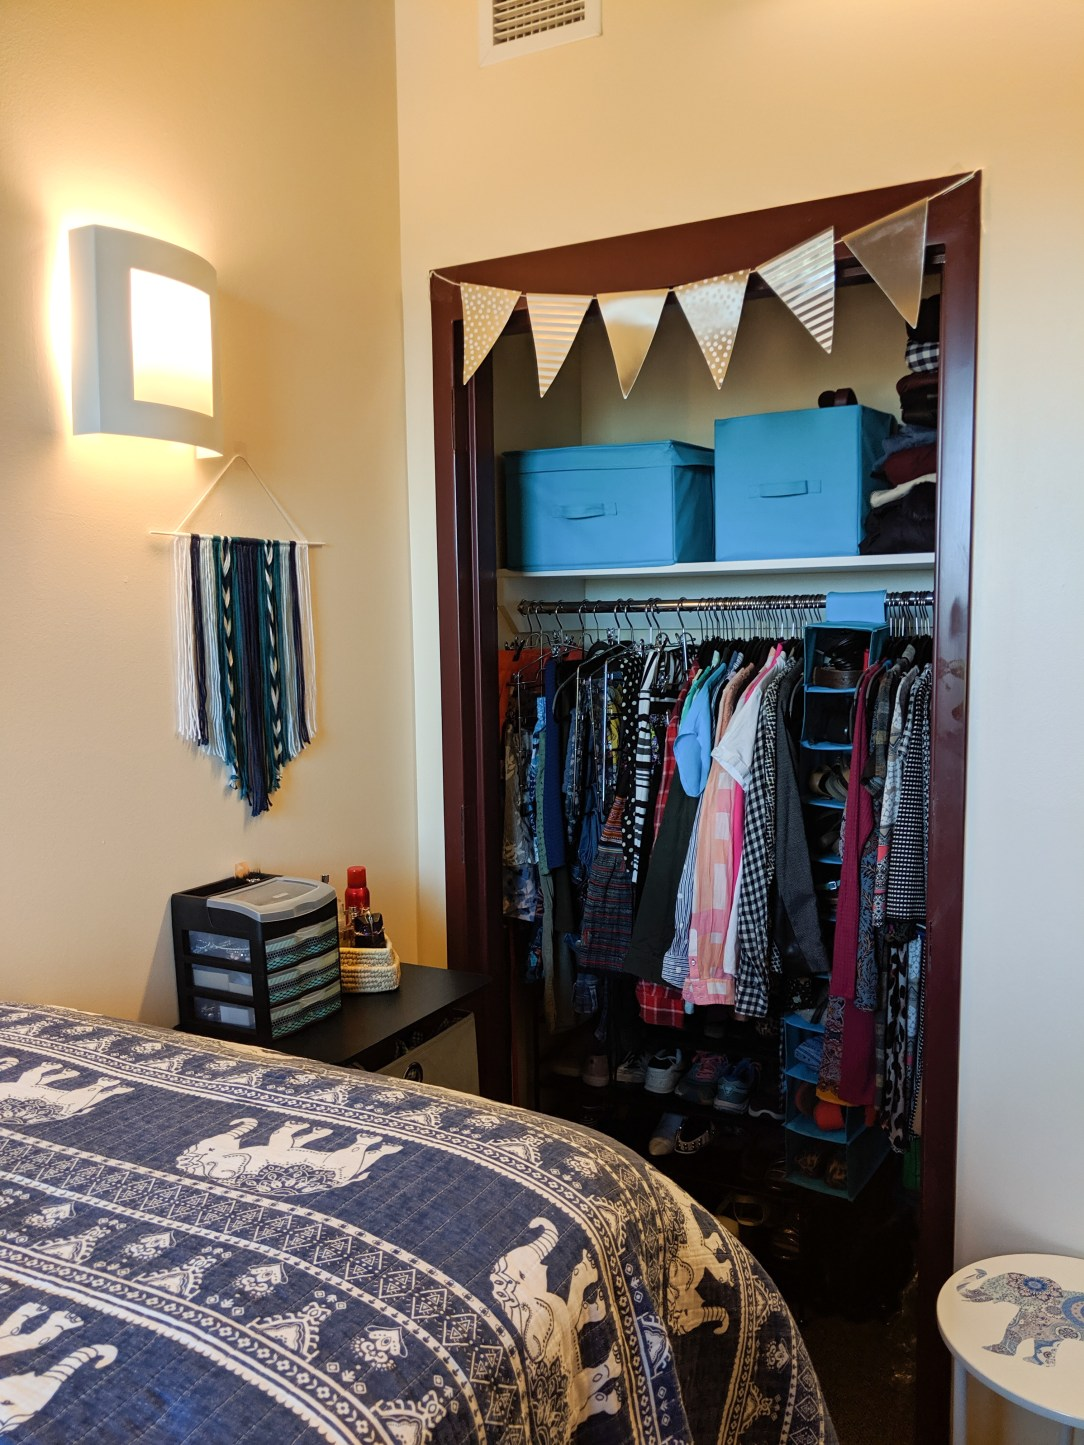 dorm room closet, closet organization